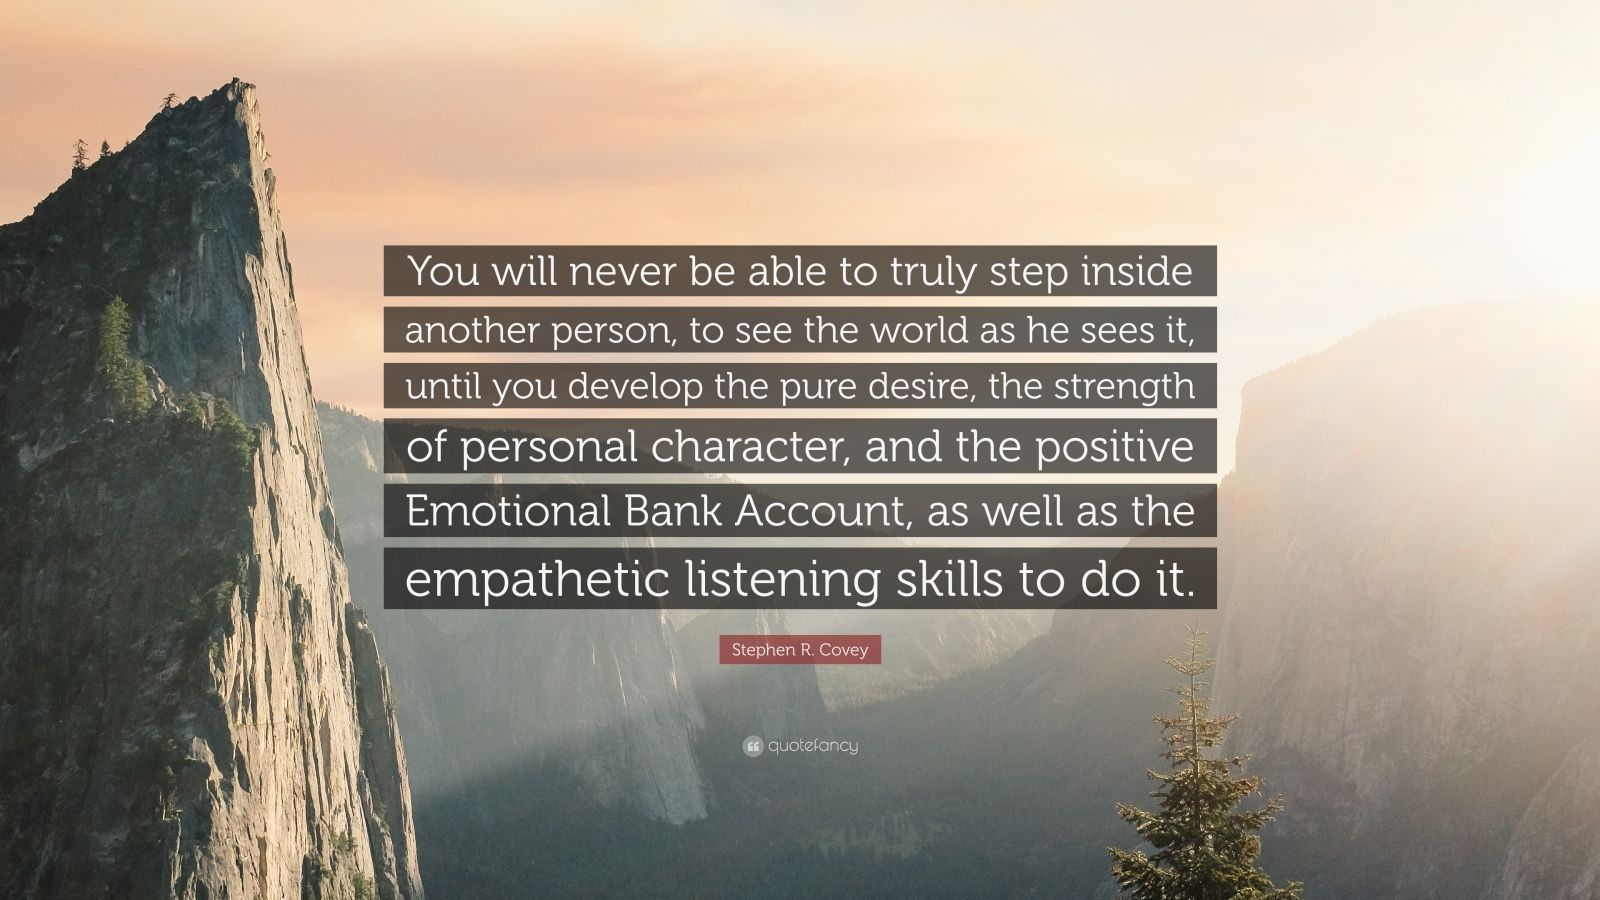 """Stephen R. Covey Quote: """"You will never be able to truly step inside another person, to see the world as he sees it, until you develop the pure desire, the strength of personal character, and the positive Emotional Bank Account, as well as the empathetic listening skills to do it."""""""